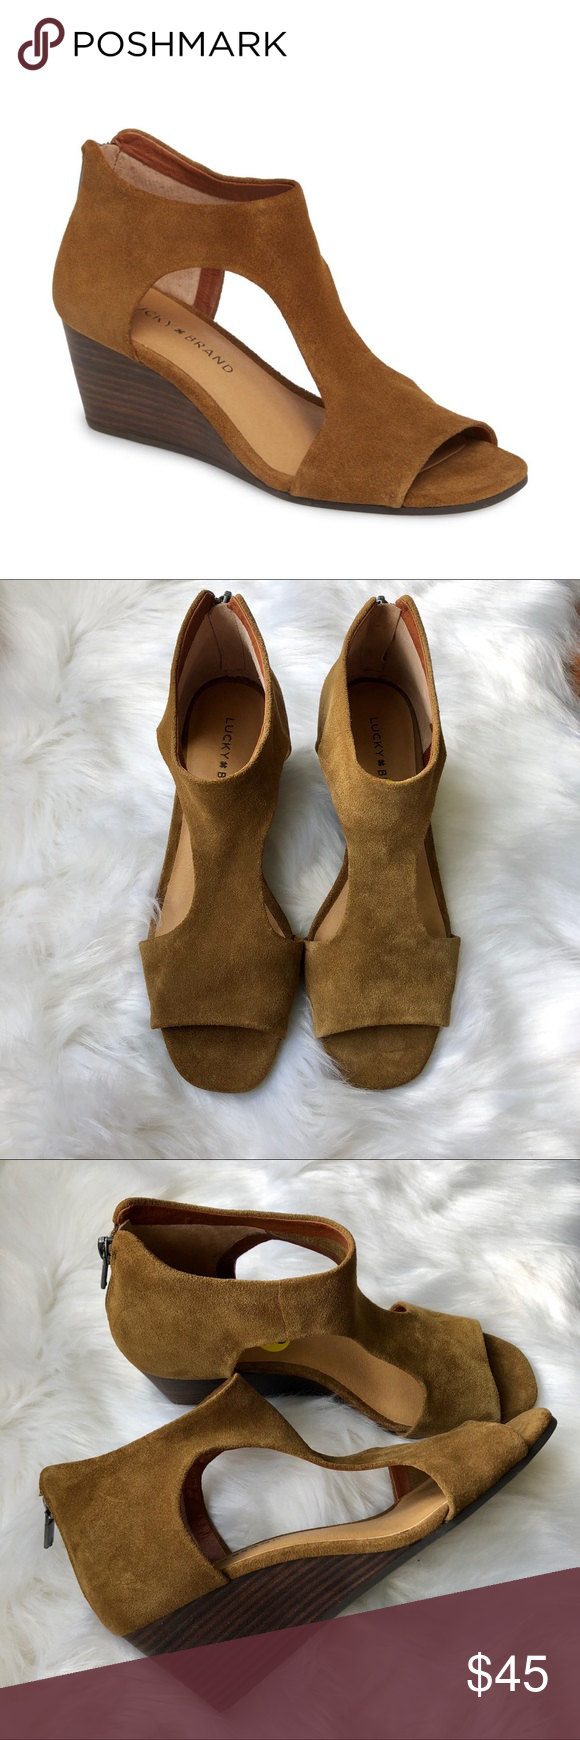 a1d9c04d3d Lucky Brand NWOT Tehirr Wedge Sandals Lucky Brand 'Tehirr' wedge sandals.  NWOT.